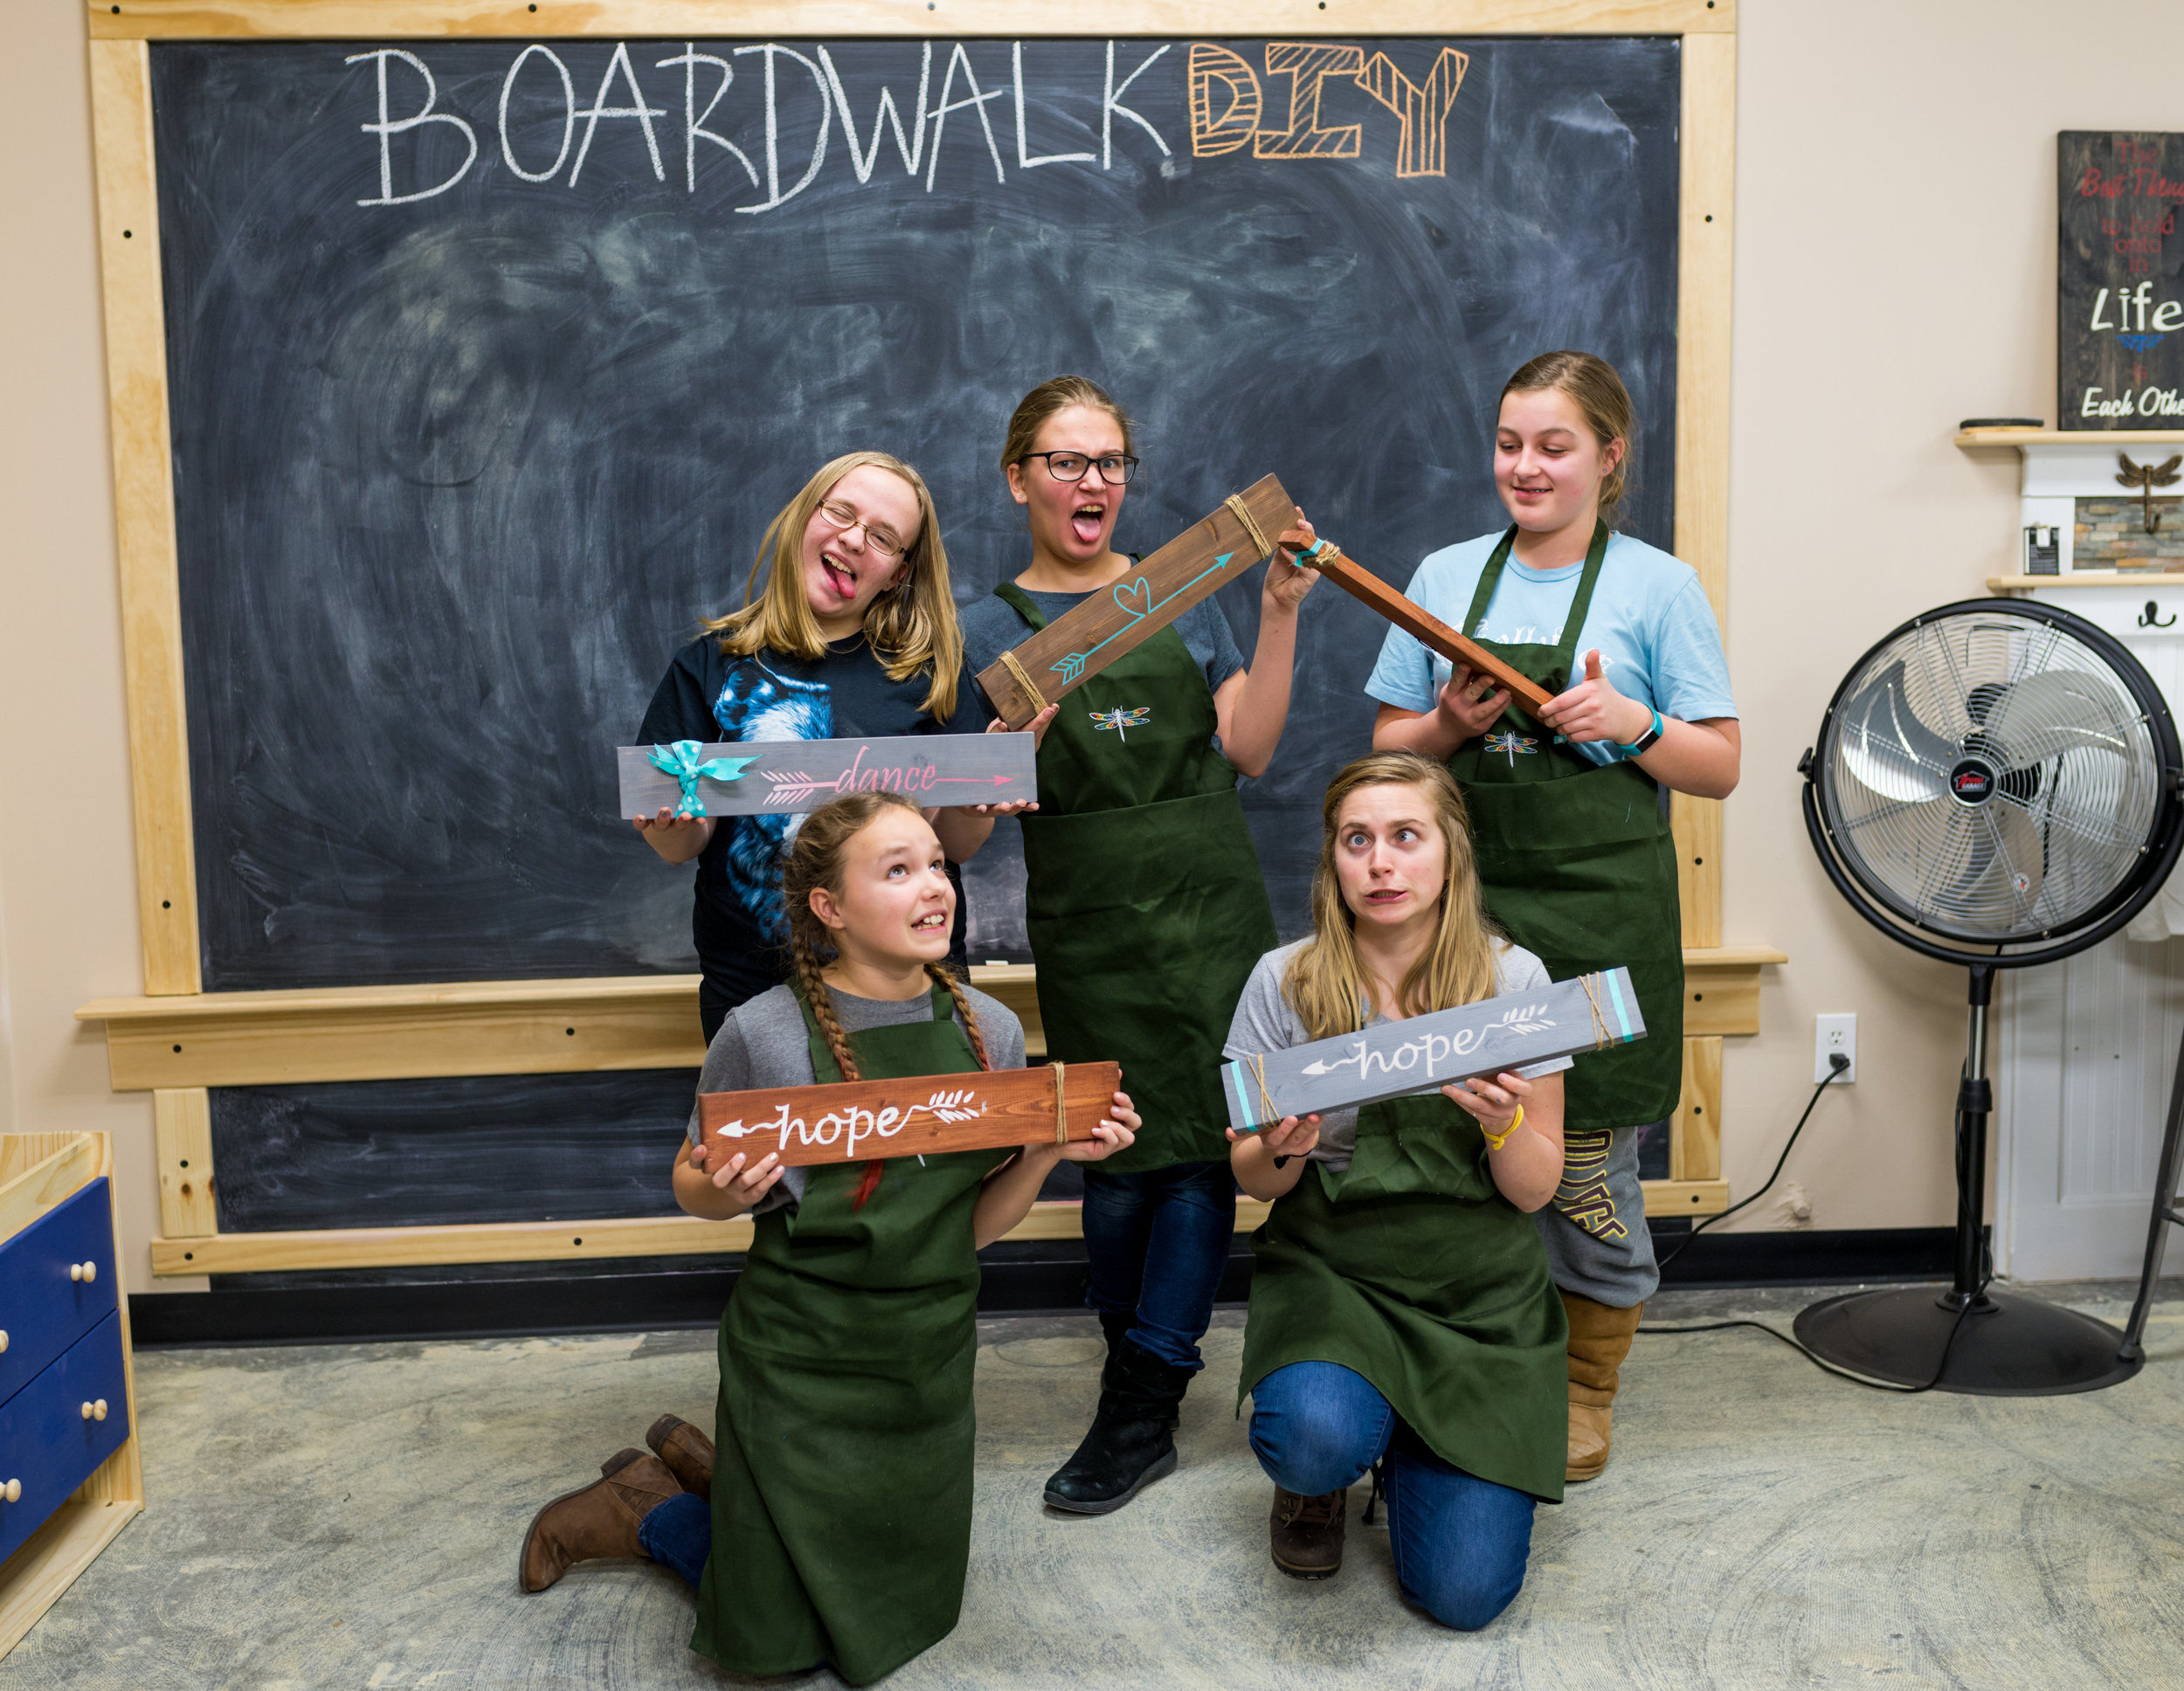 BoardwalkDIYstudio1.31.18-0053.jpg